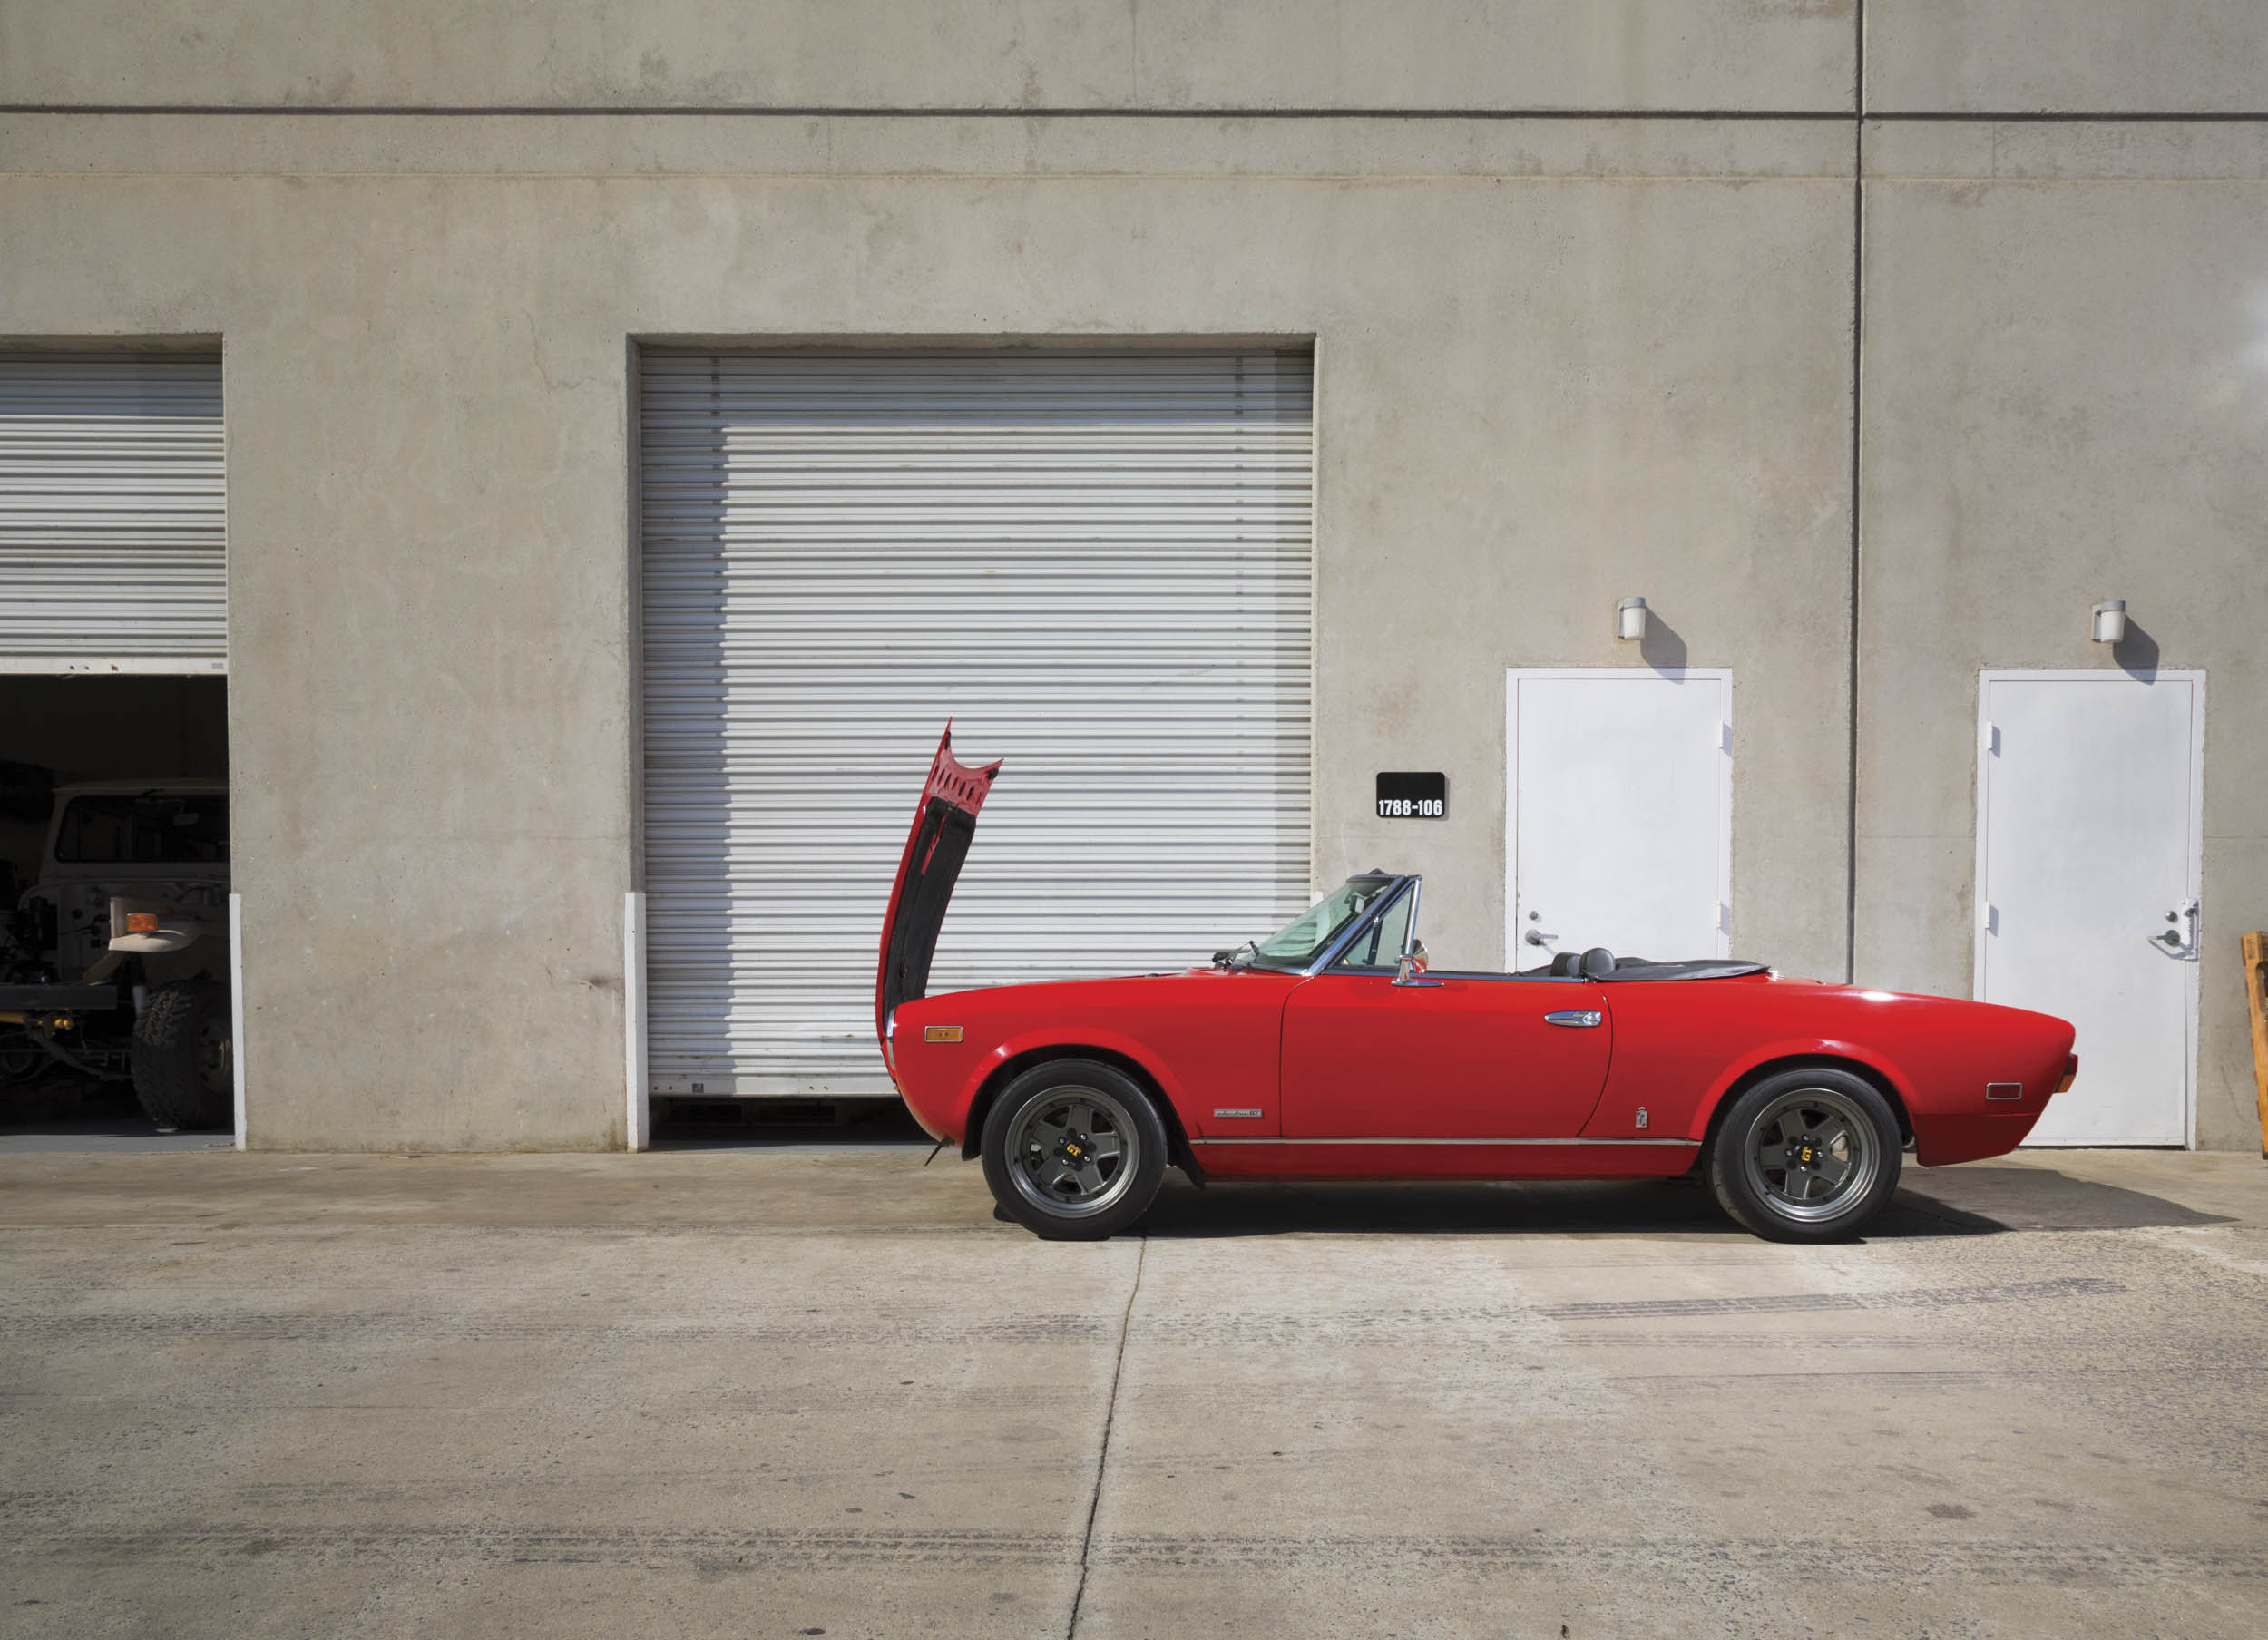 Although EV West specializes in VWs, the shop also featured a Fiat, several BMWs, a De Lorean, and a dune buggy—all of which had been or were being converted to electric power.